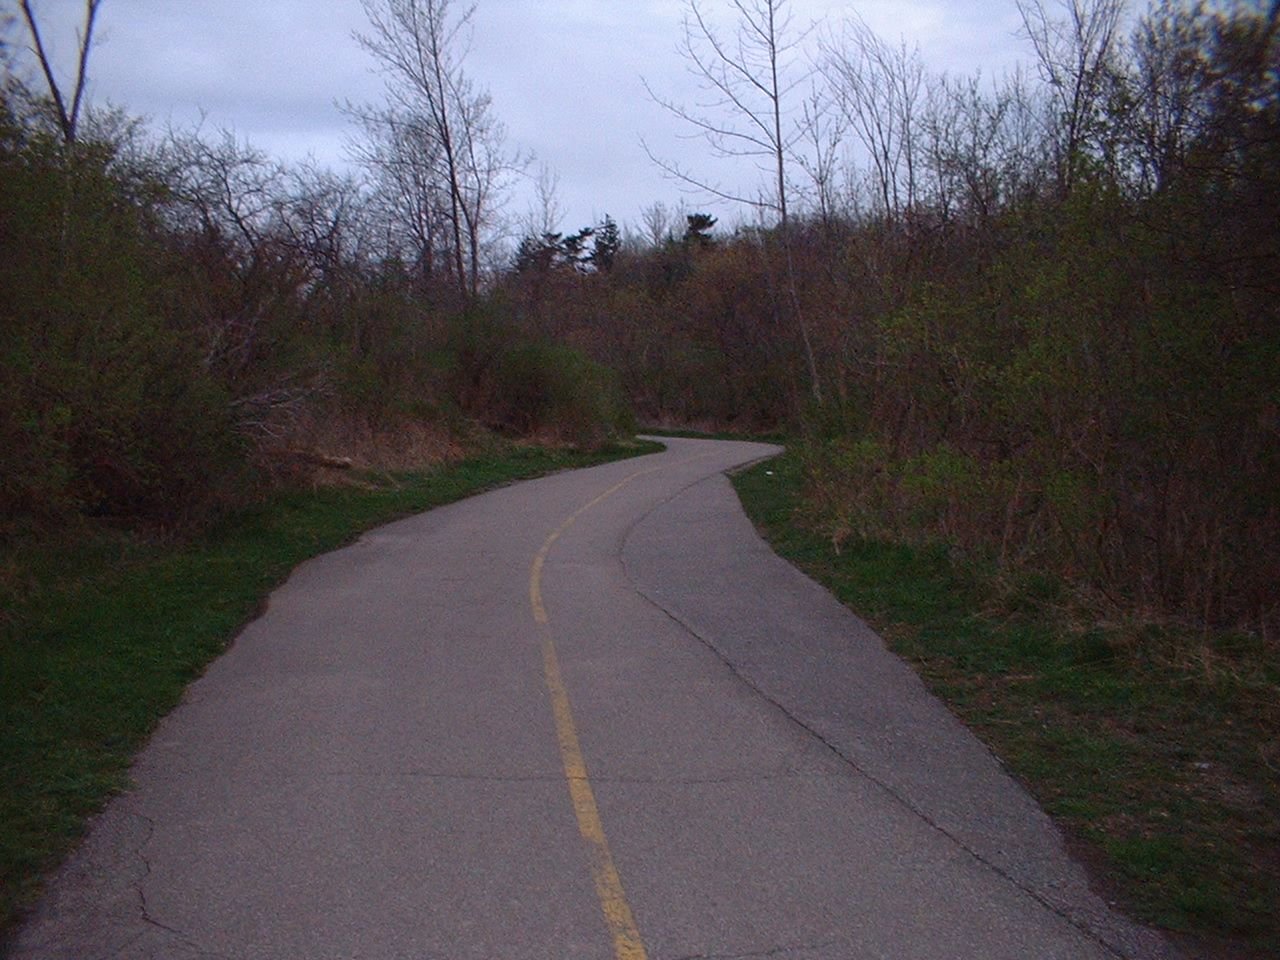 Trans Canada Trail in Etobicoke, the Trans Canada trail is the longest bike / hike trail in the world. It goes all across Canada.